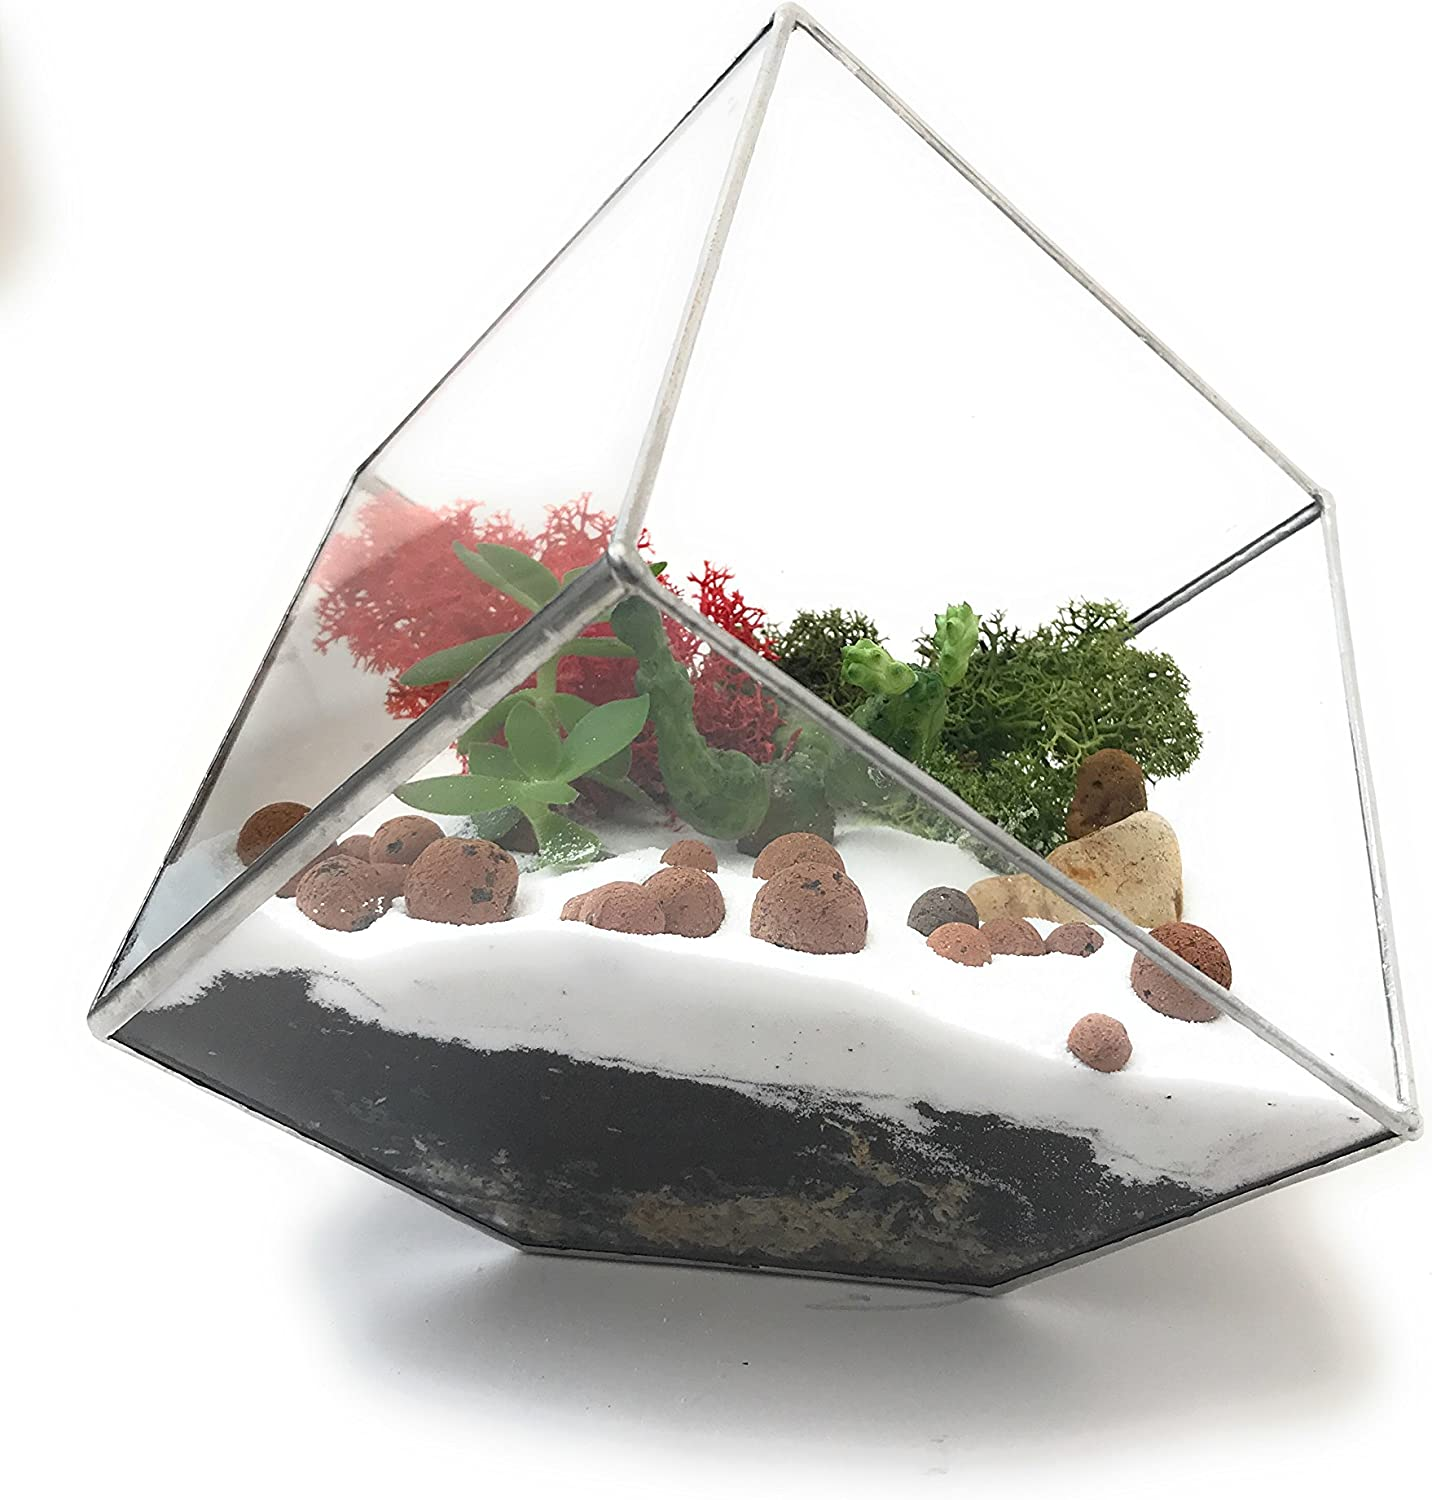 Christmas Premium Terrarium Kit with Beautiful Reindeer Moss Limited Collection Packed and Made in England (Terrarium Kit with Terrarium)